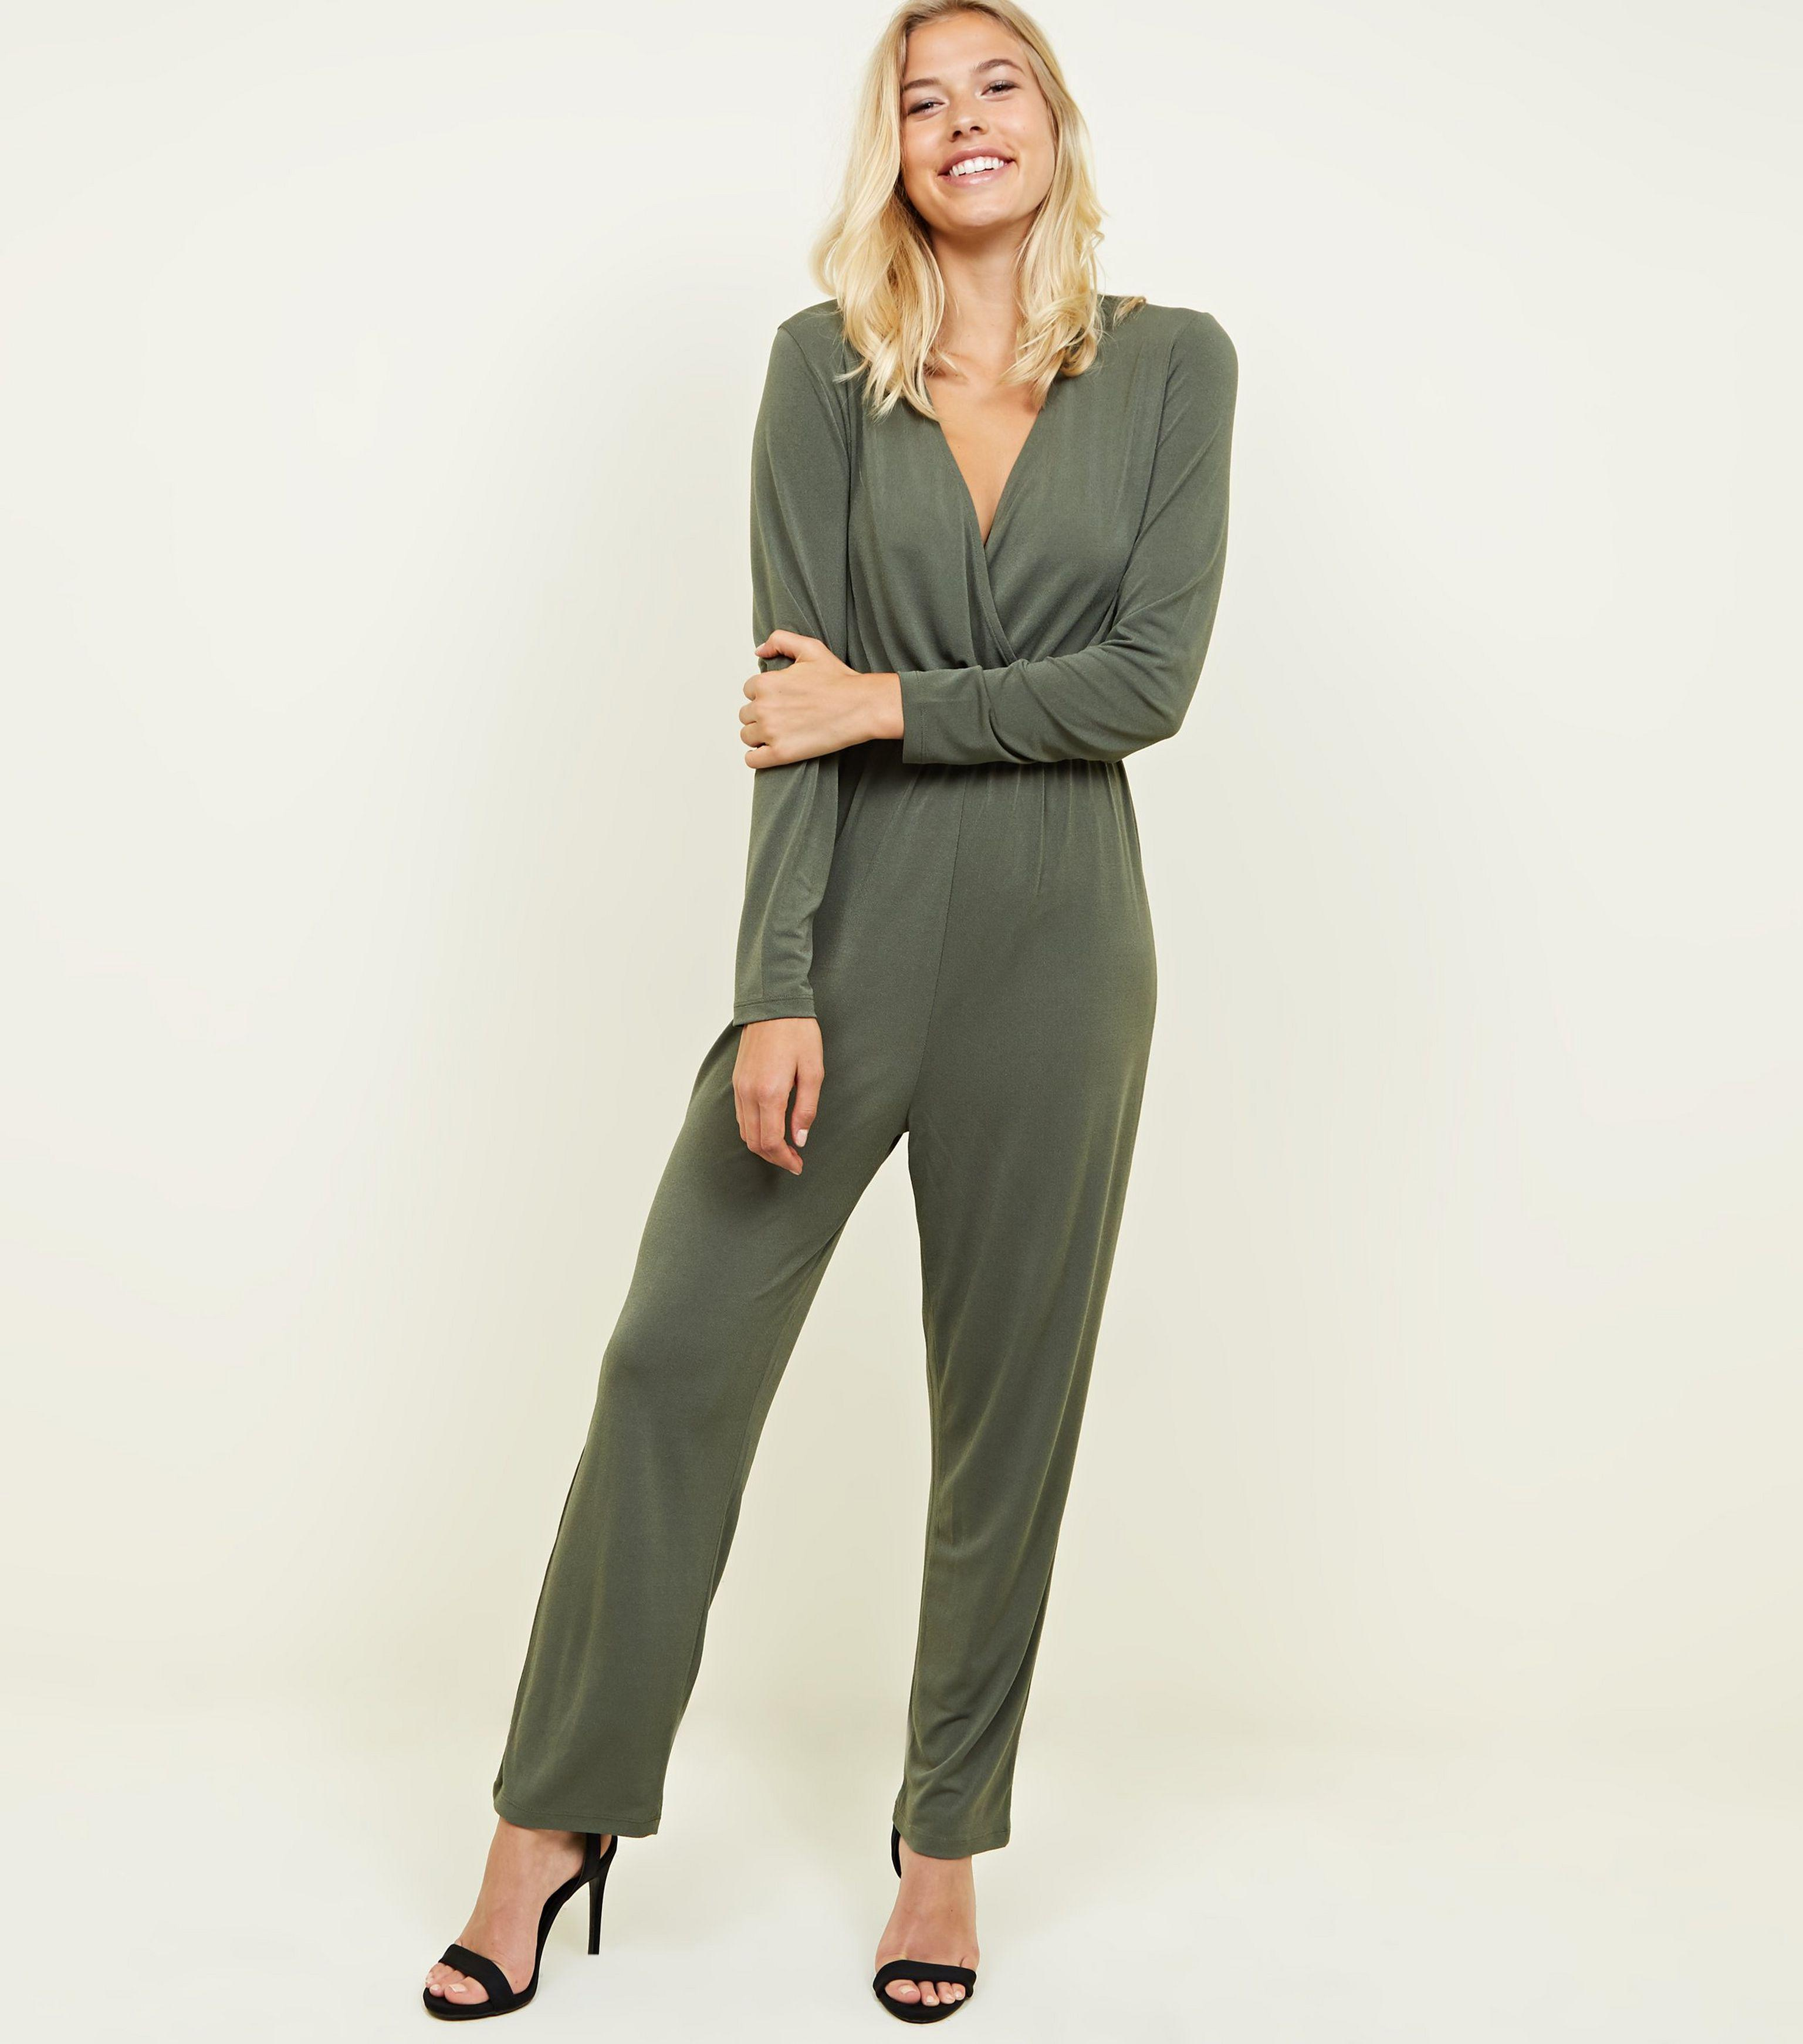 29133ec31e5 New Look Khaki Crepe Jersey Wrap Front Long Sleeve Jumpsuit in ...